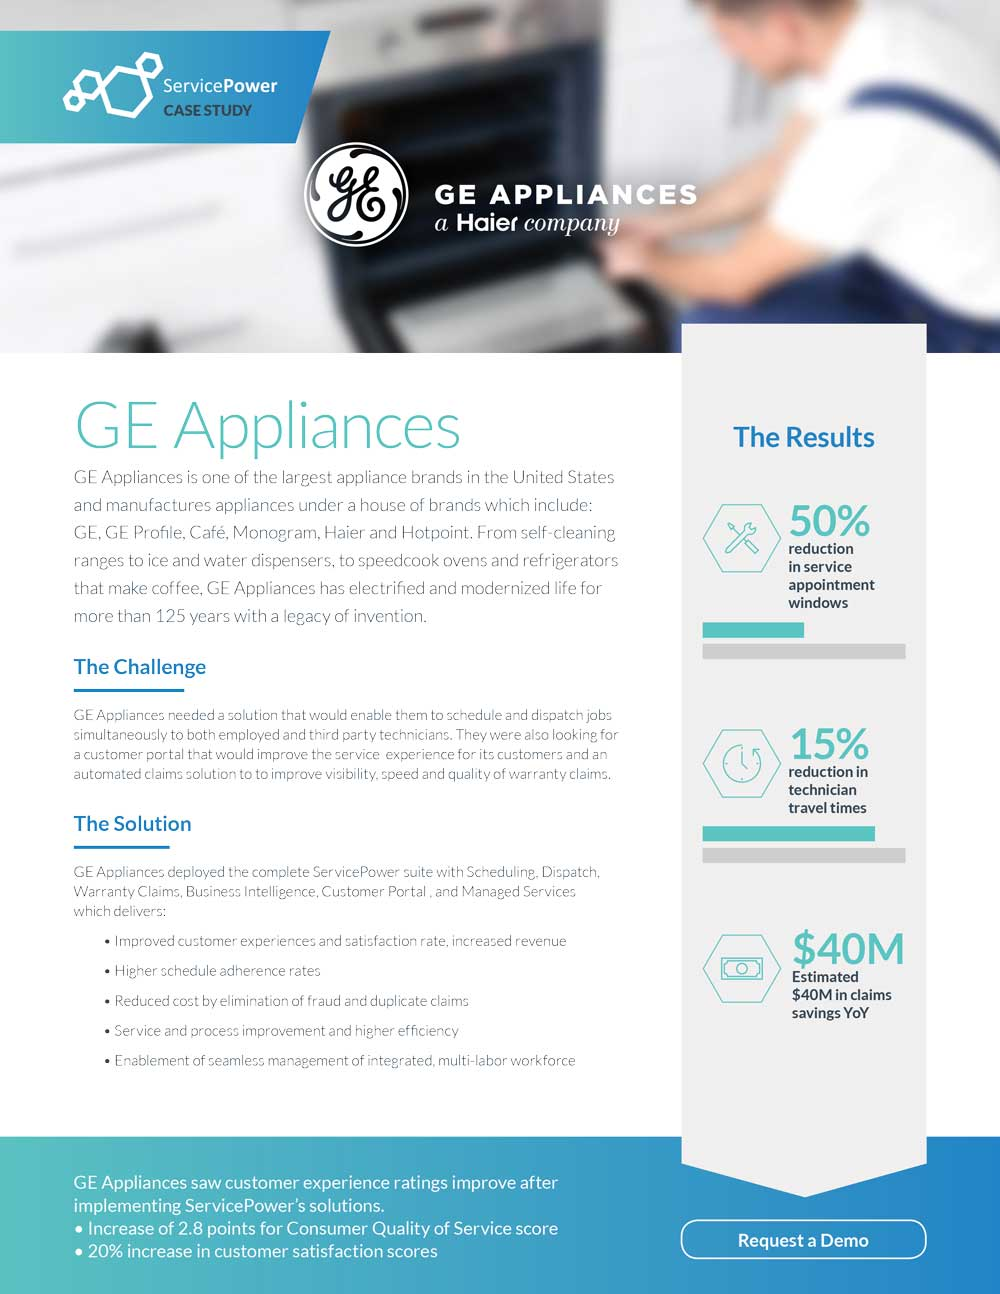 GE sees $40M in Claims Savings YoY